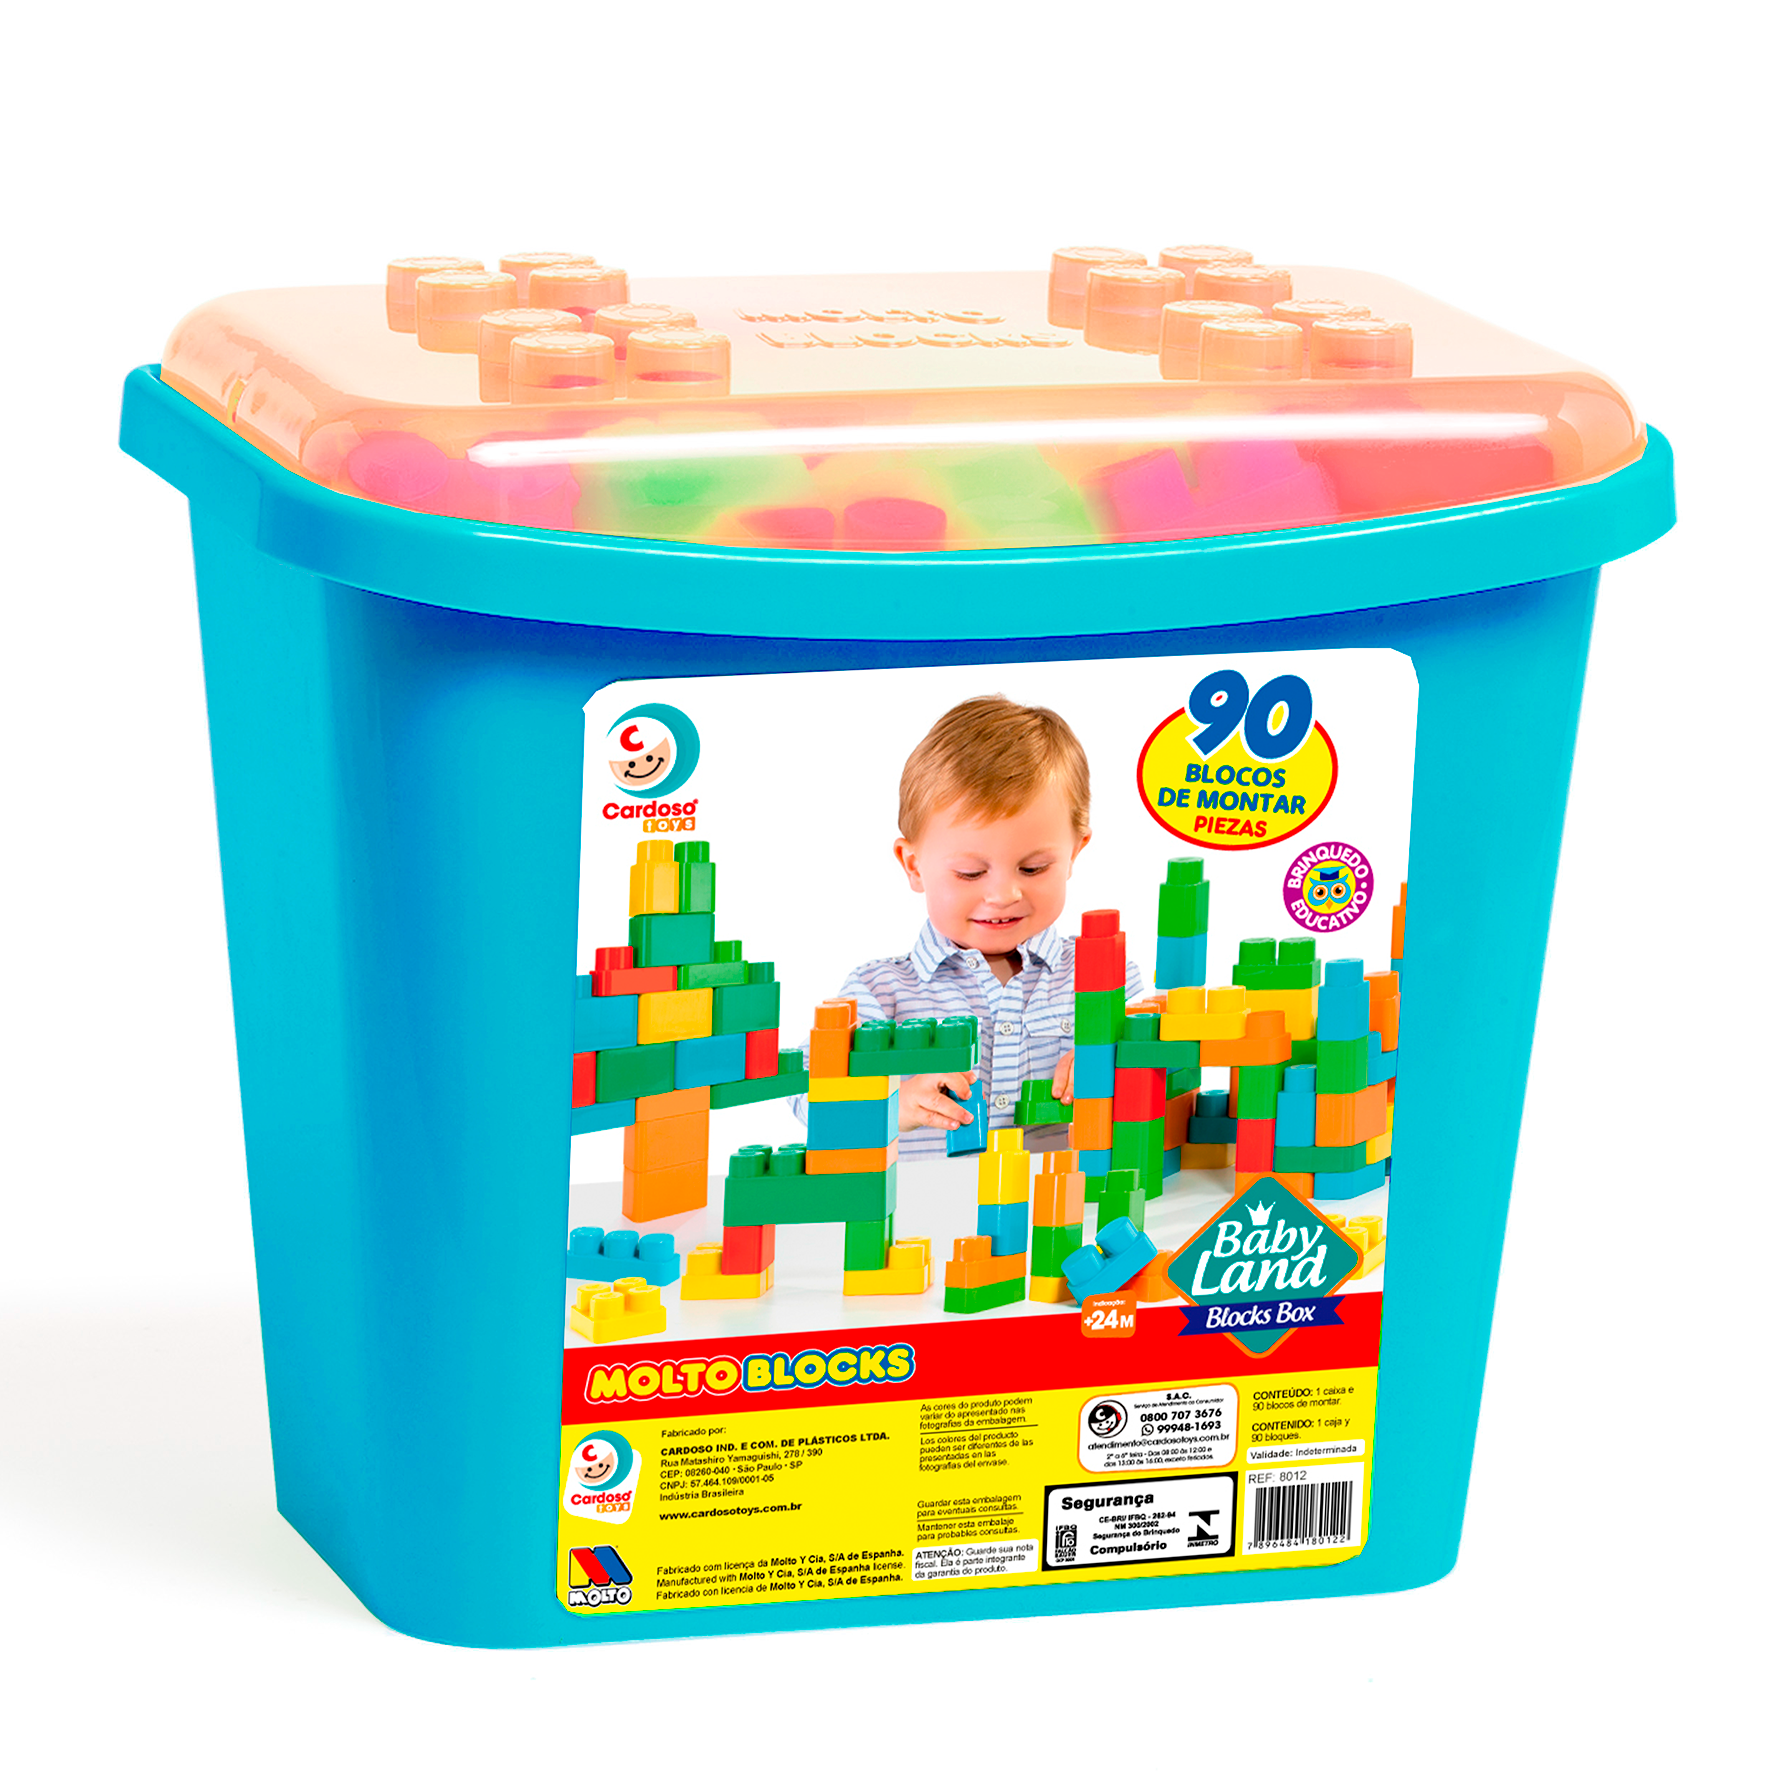 REF.-8012-BABY-LAND-BLOCKS-BOX-MENINO